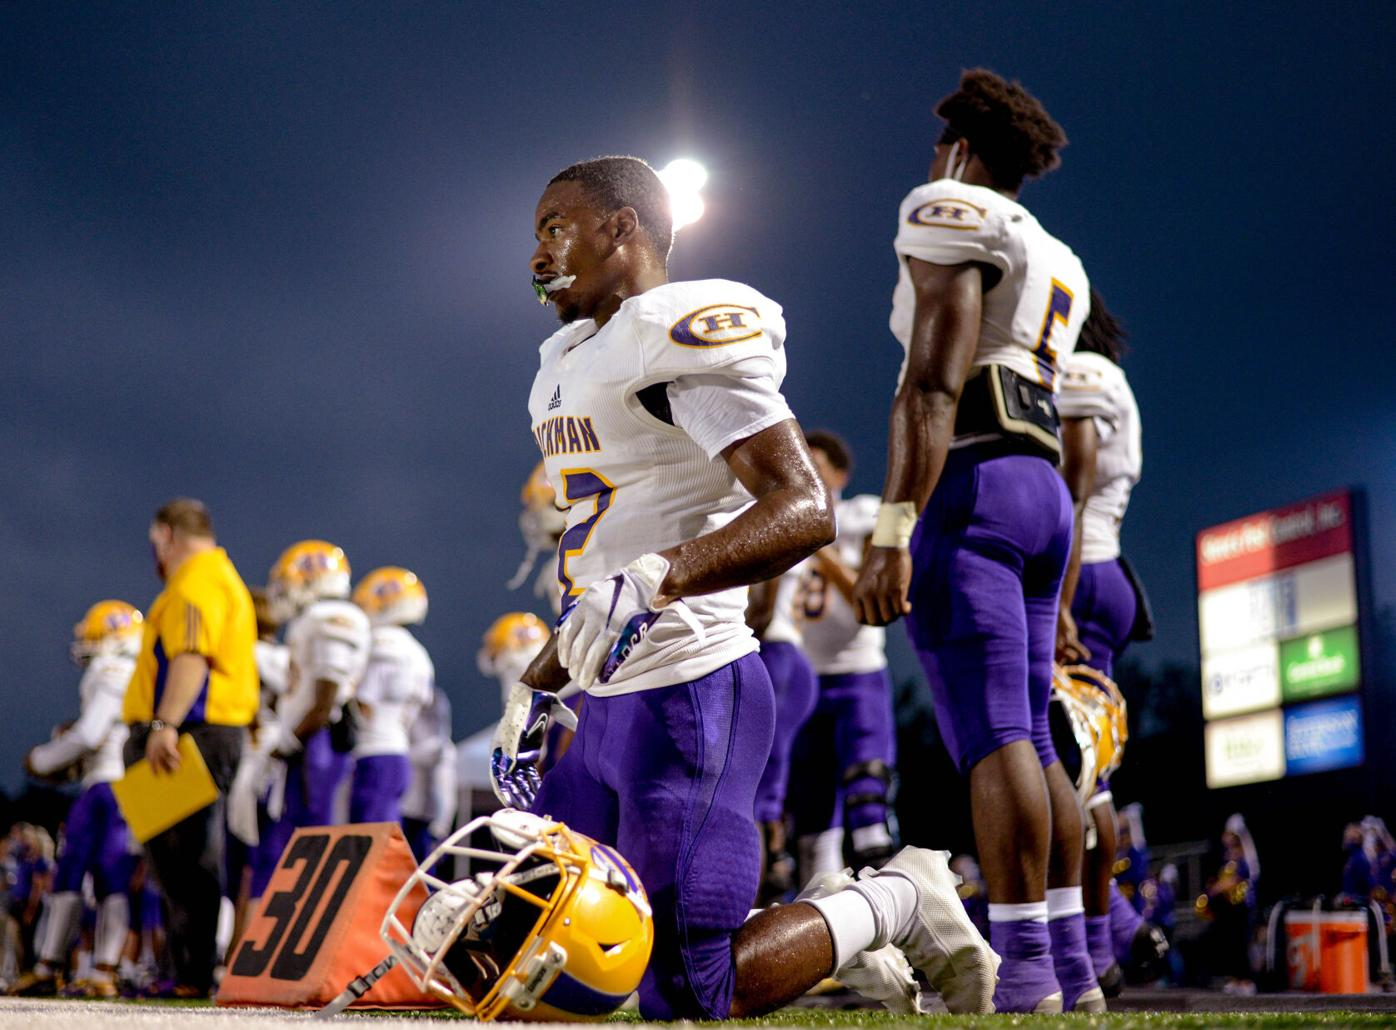 Hickman Wide Receiver LJ Williams get down to tie his cleats